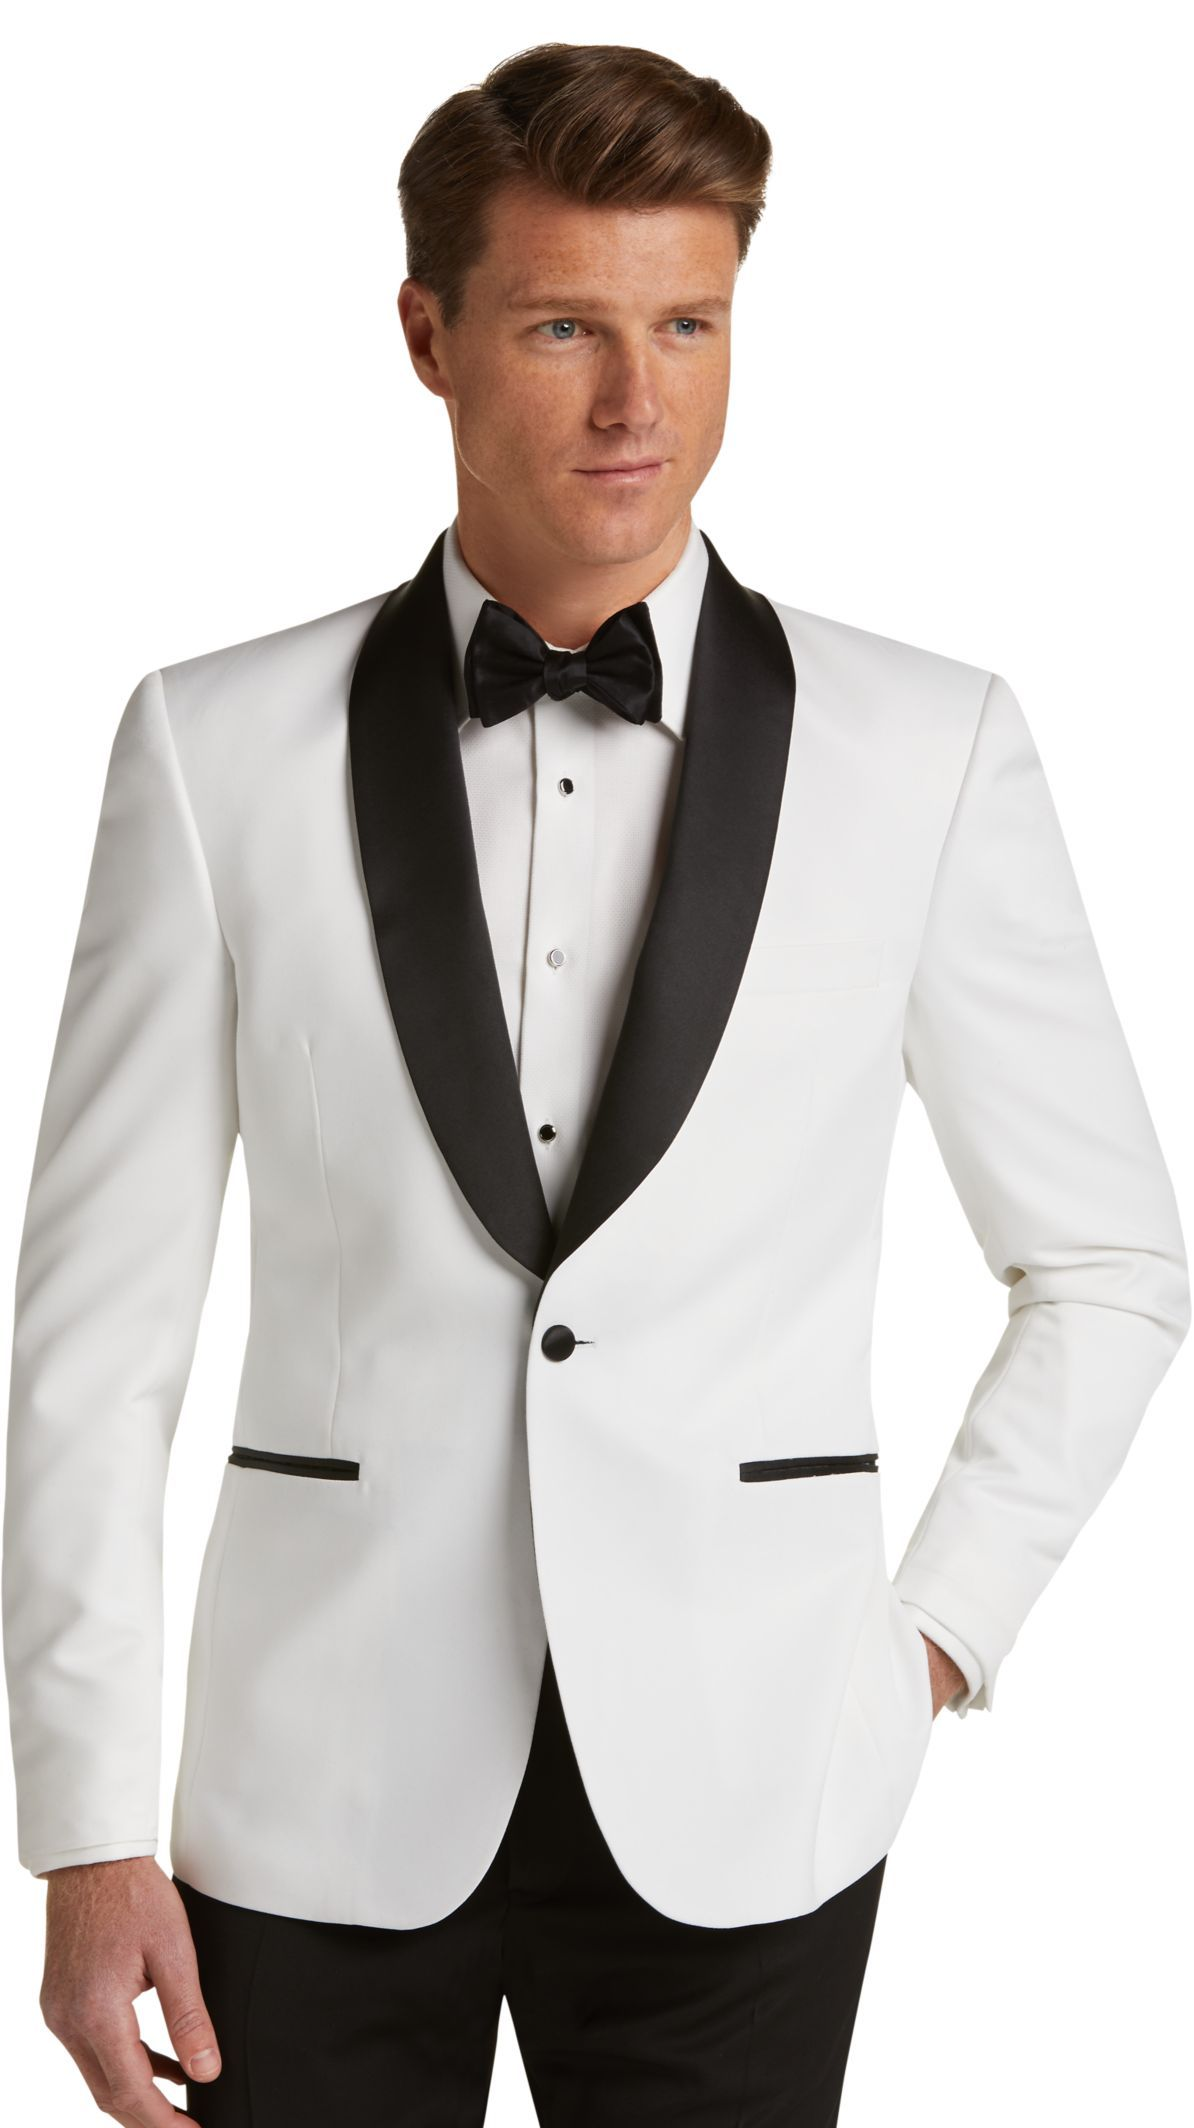 a747d7f62bb Jos. A. Bank Slim Fit Tuxedo Dinner Jacket CLEARANCE | Products ...